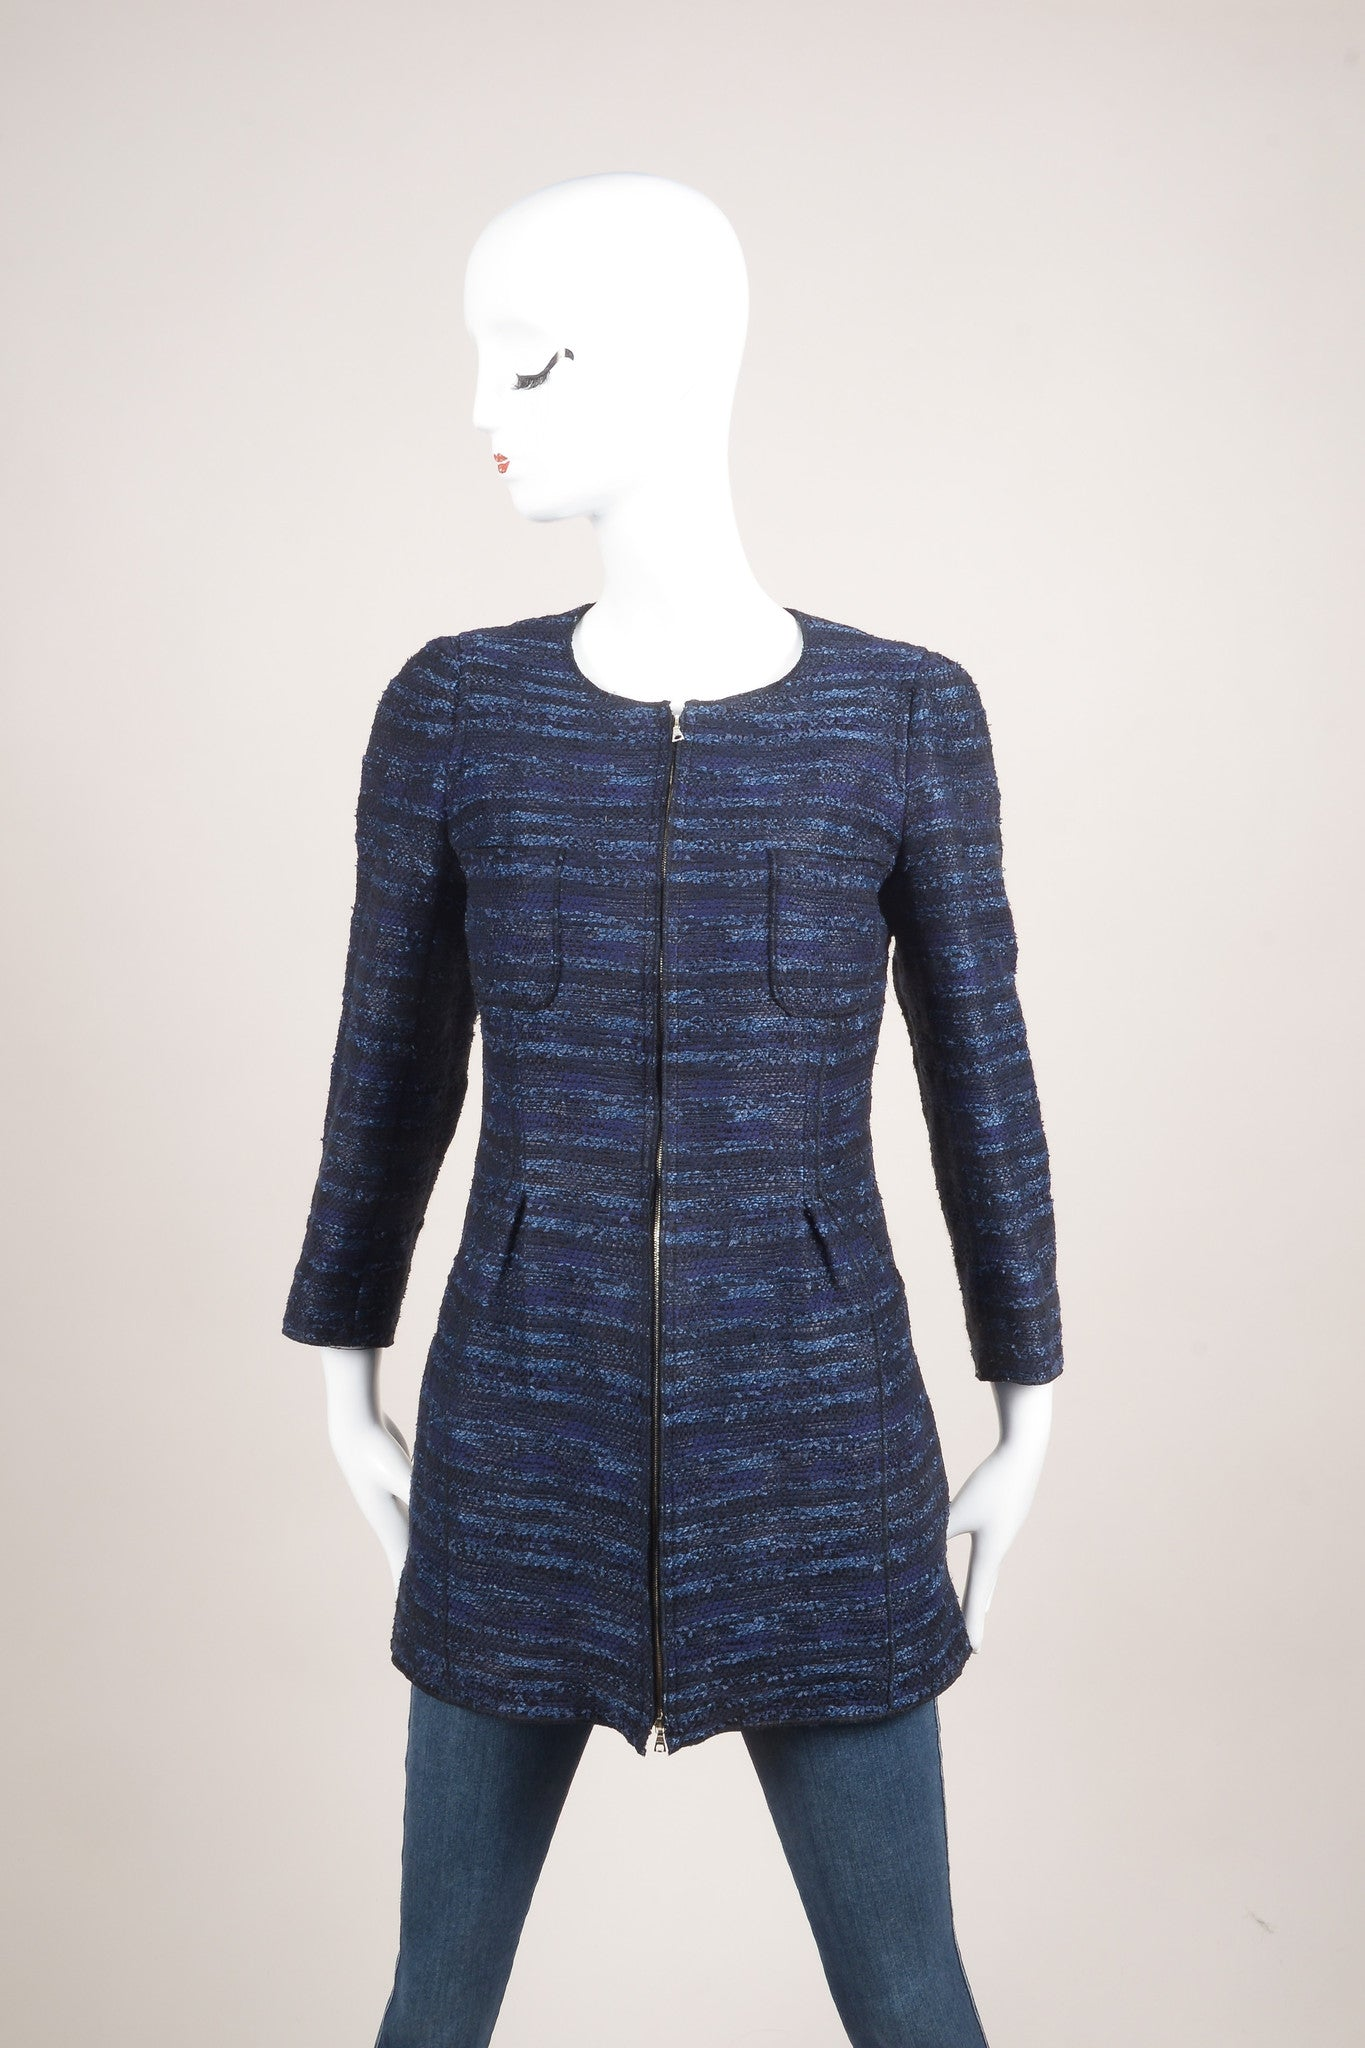 Nina Ricci Navy Blue and Black Woven Tweed Knit Long Sleeve Jacket Frontview